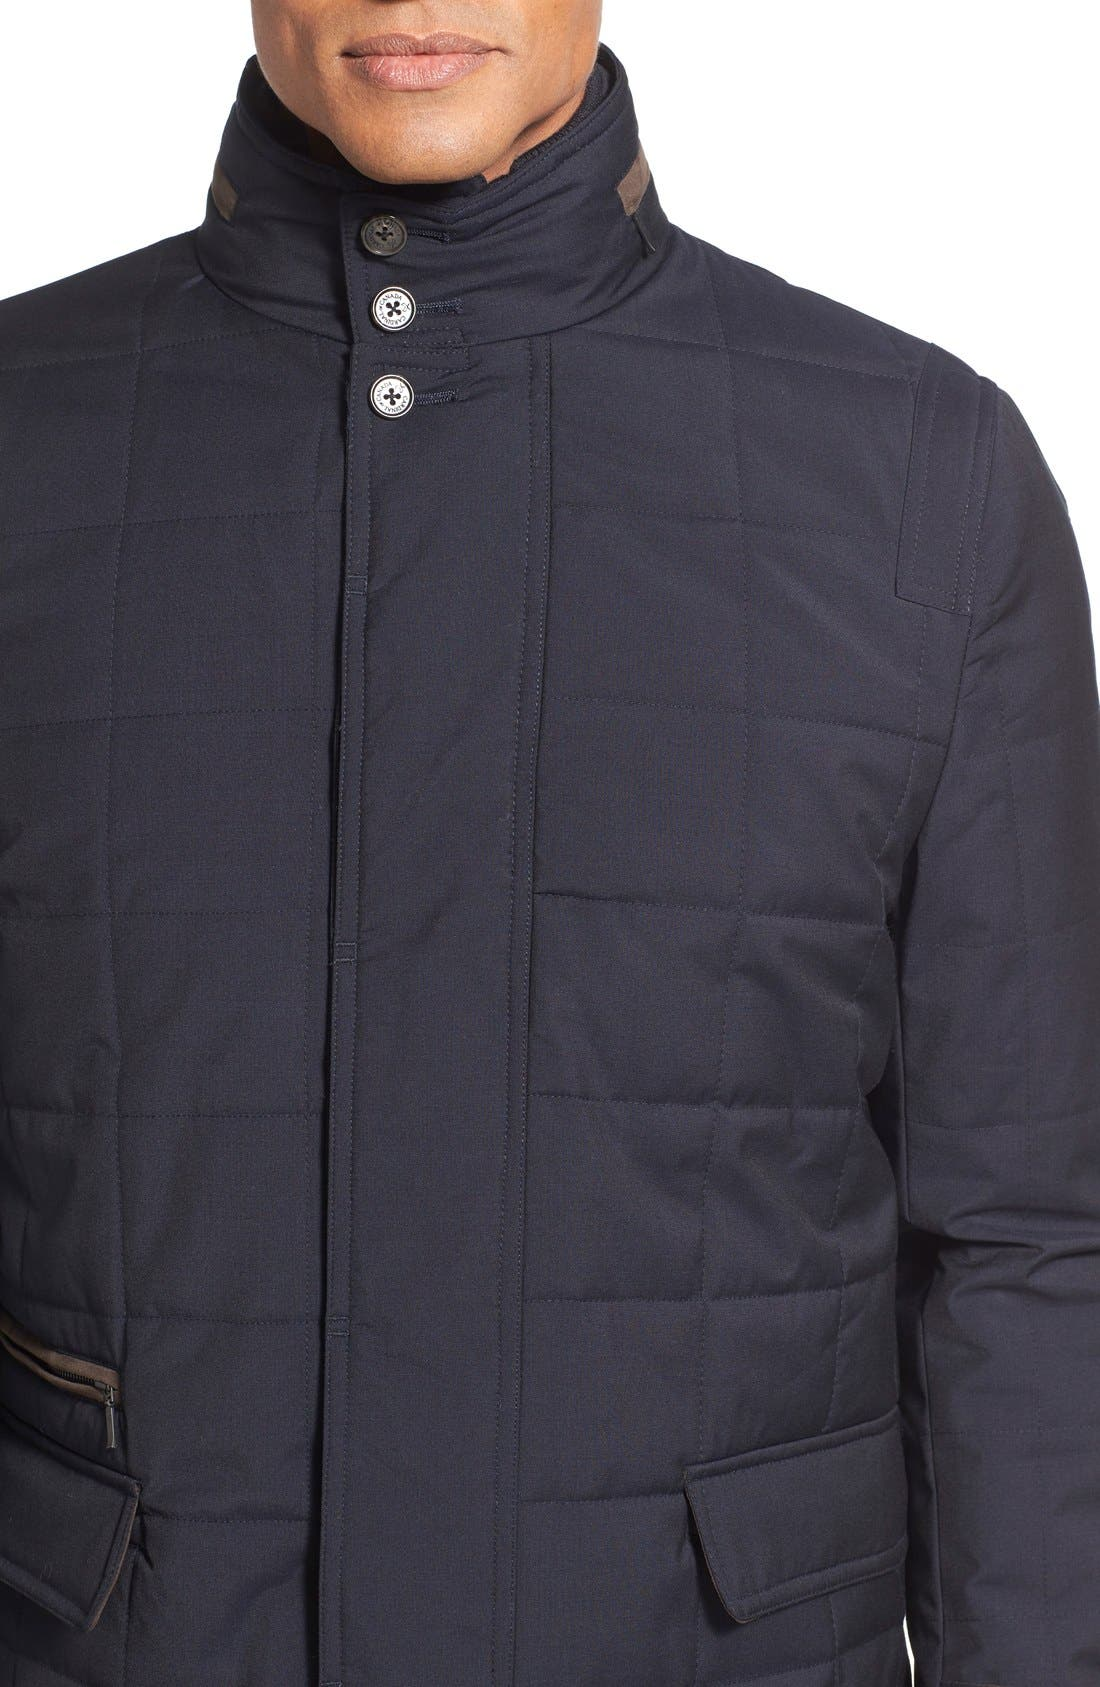 Quilted Wool Parka,                             Alternate thumbnail 4, color,                             410